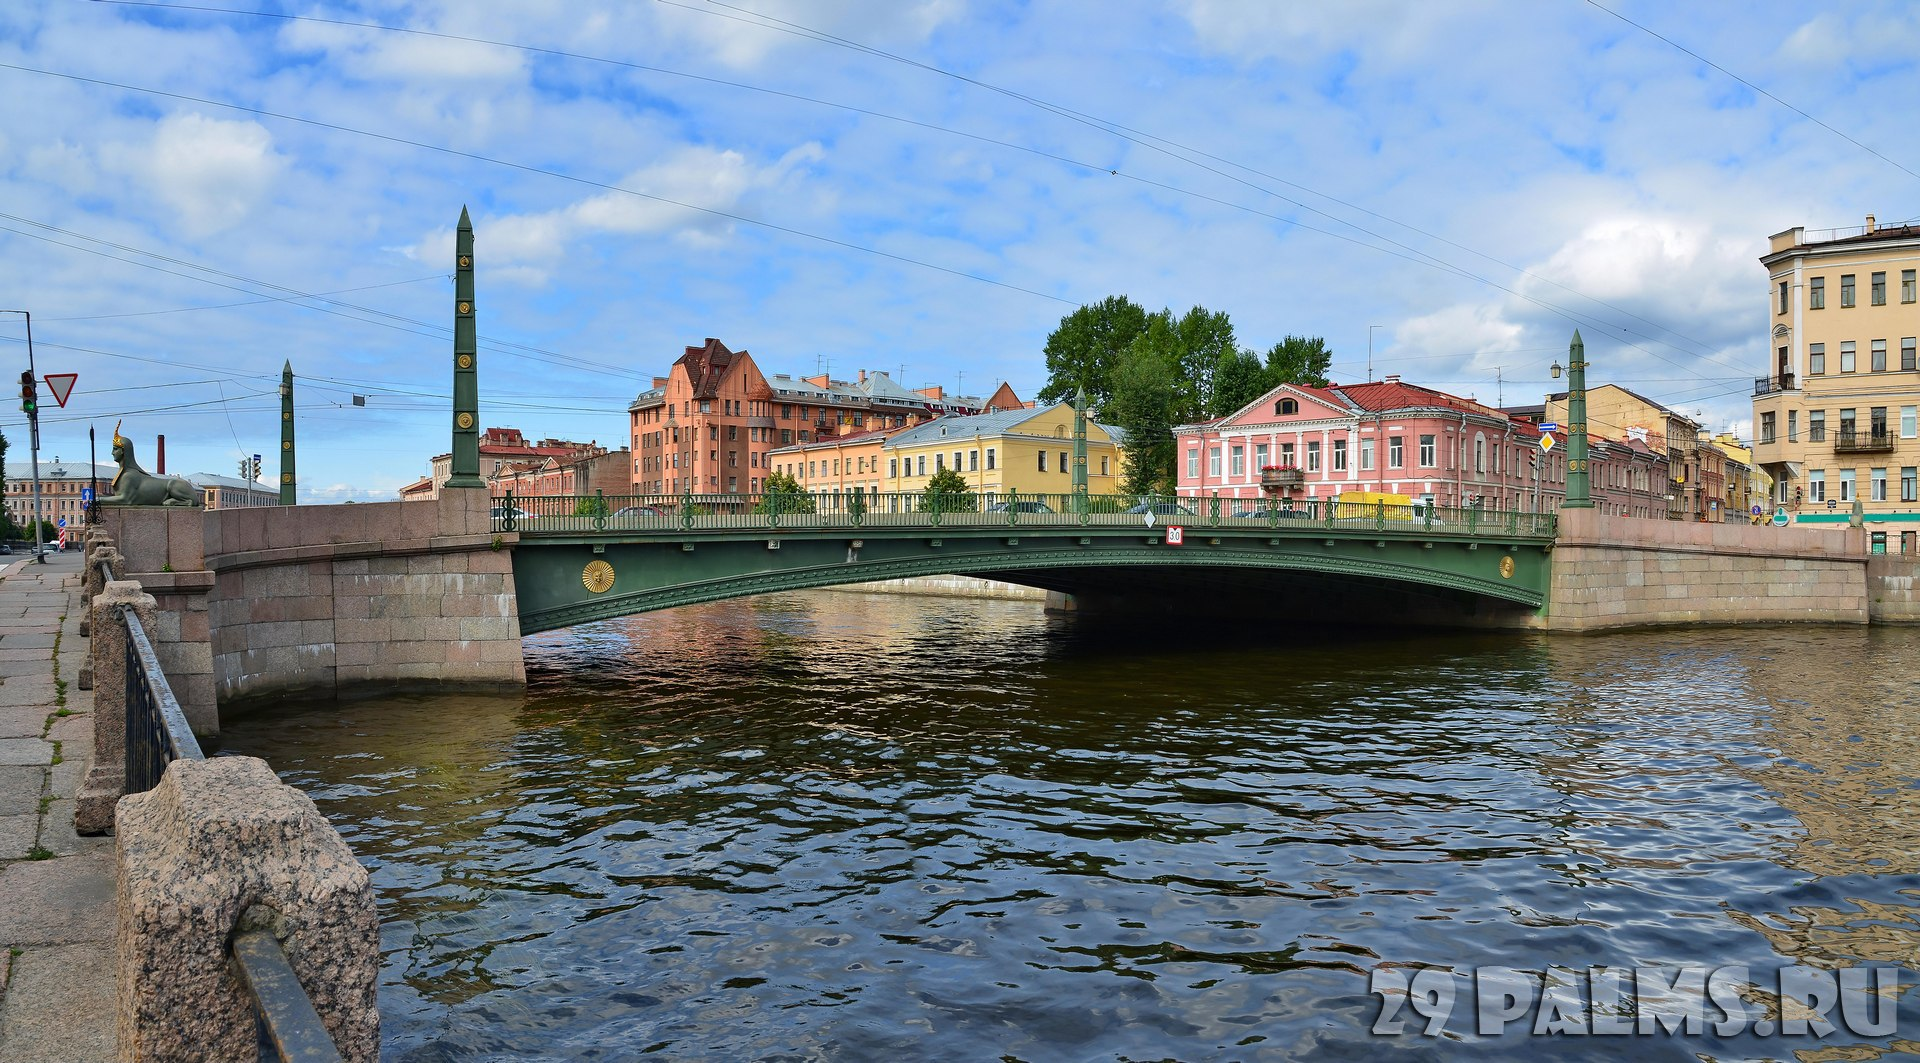 Россия. Санкт-Петербург. Египетский мост через Фонтанку. View of the Egyptian Bridge with the Fontanka River Embankment. St.Petersburg. Фото s_garmashov-Dep